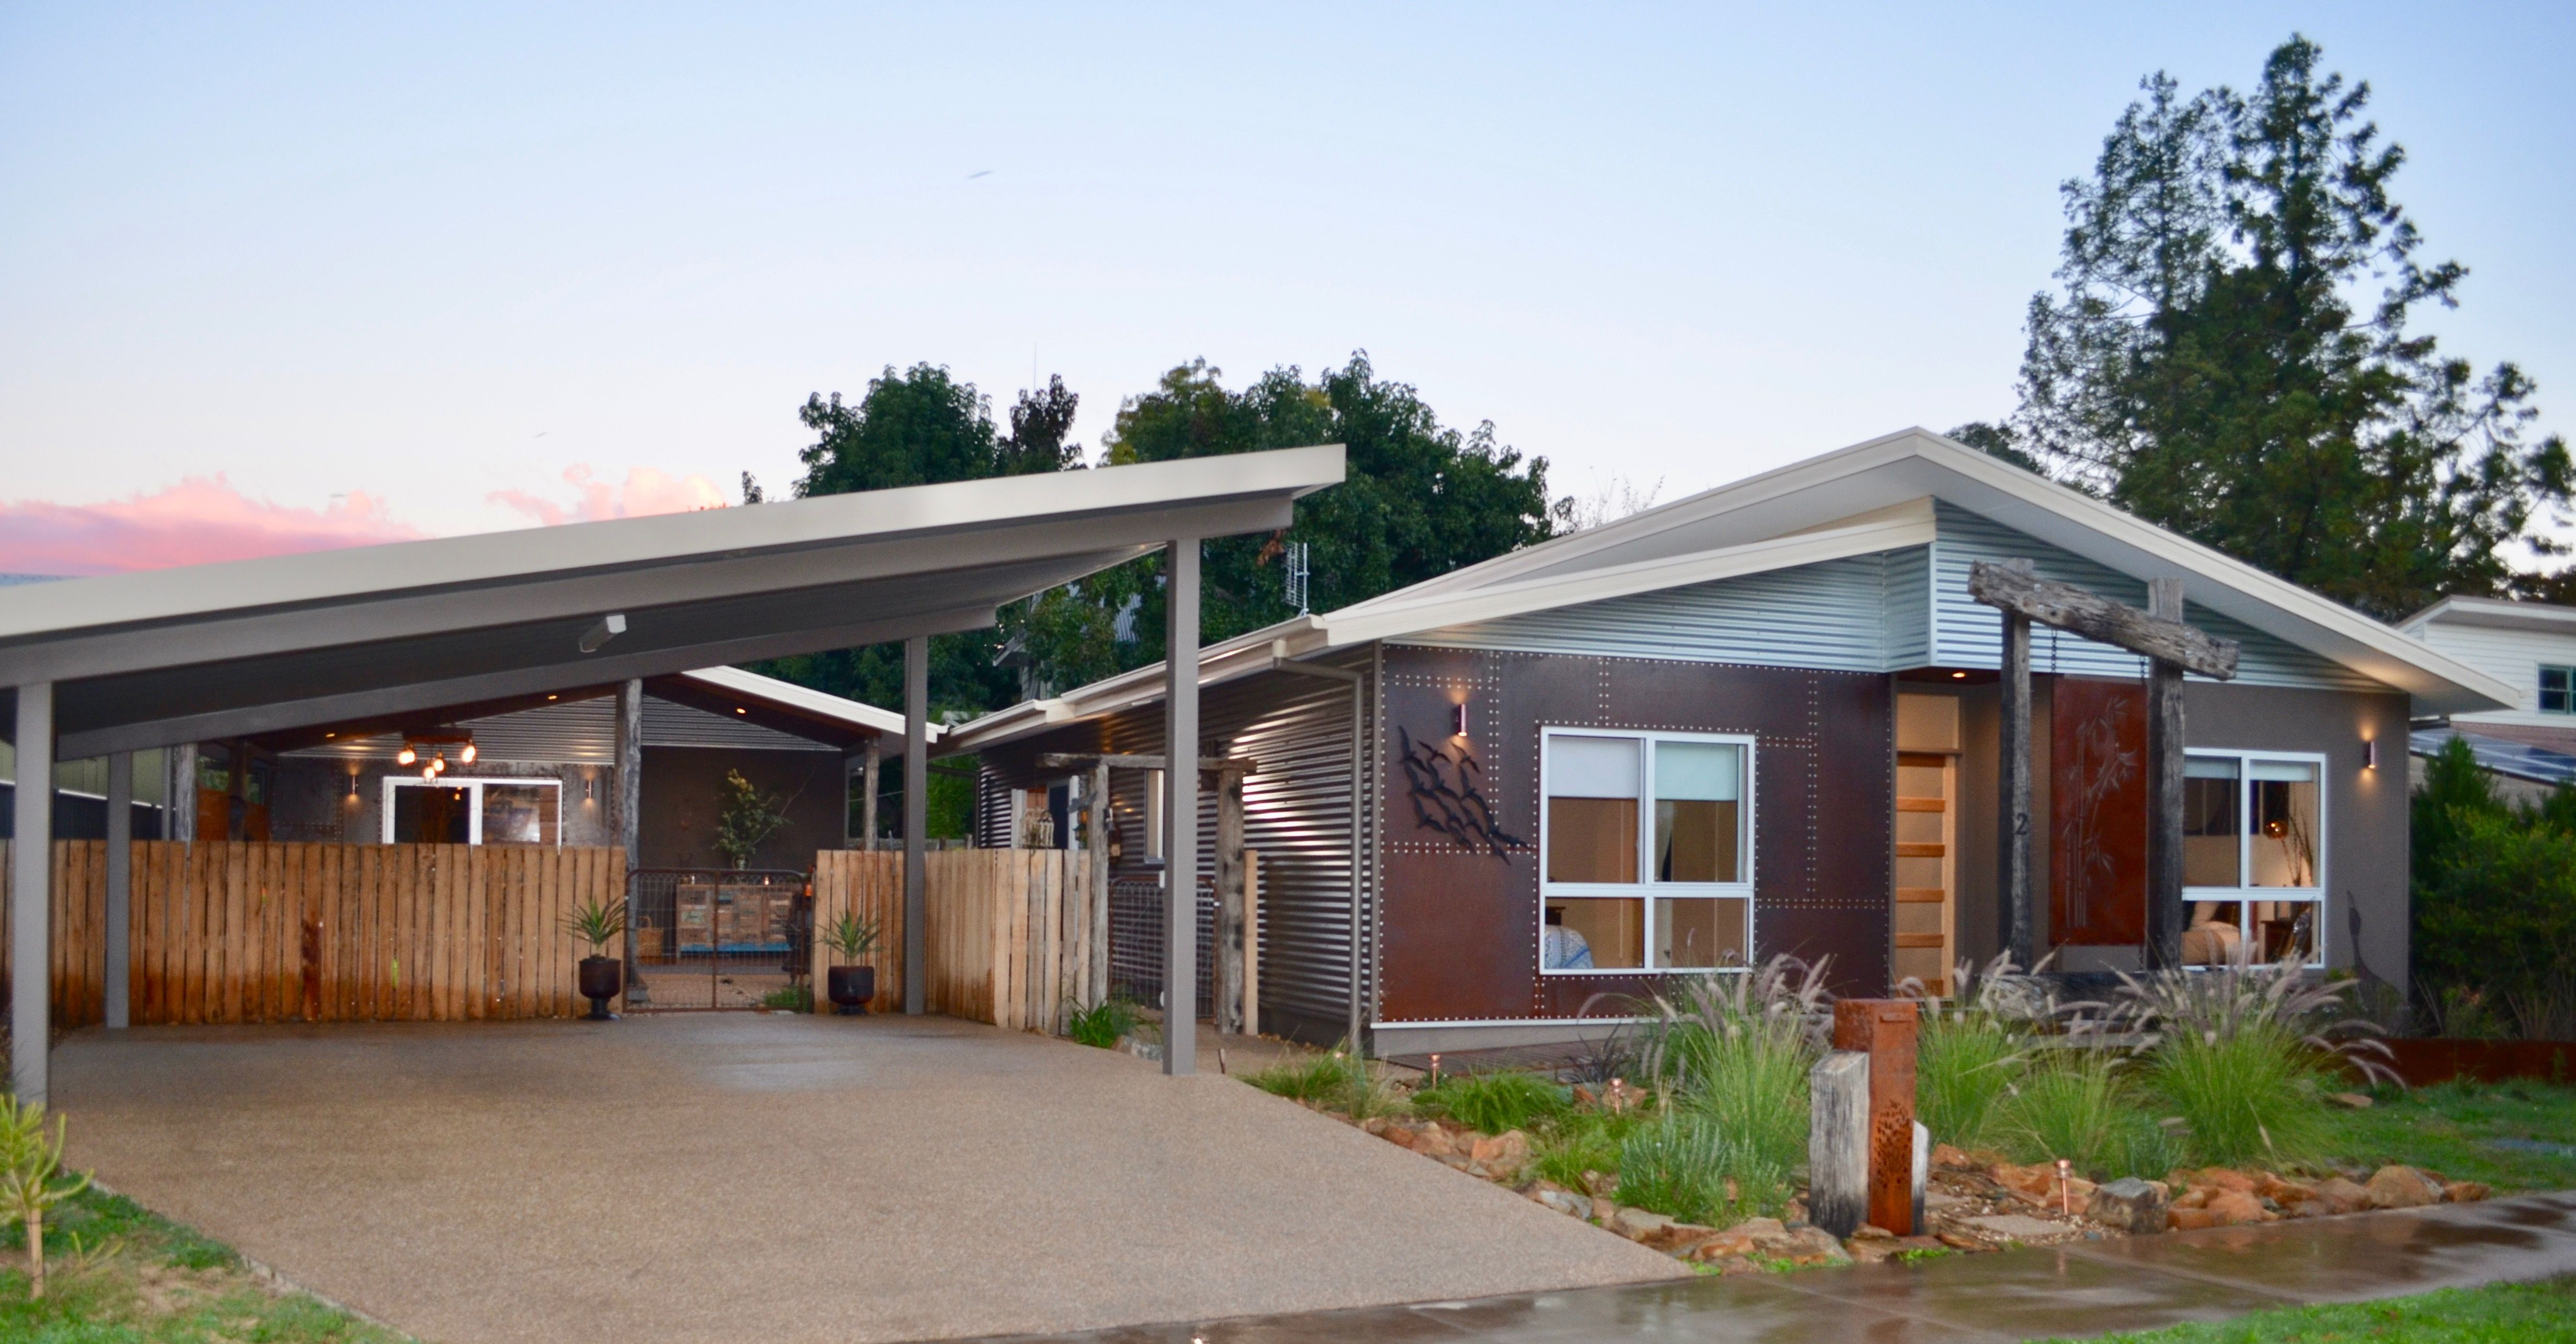 Craftsman built home; a hop, skip and a jump from everything that is great about Bright